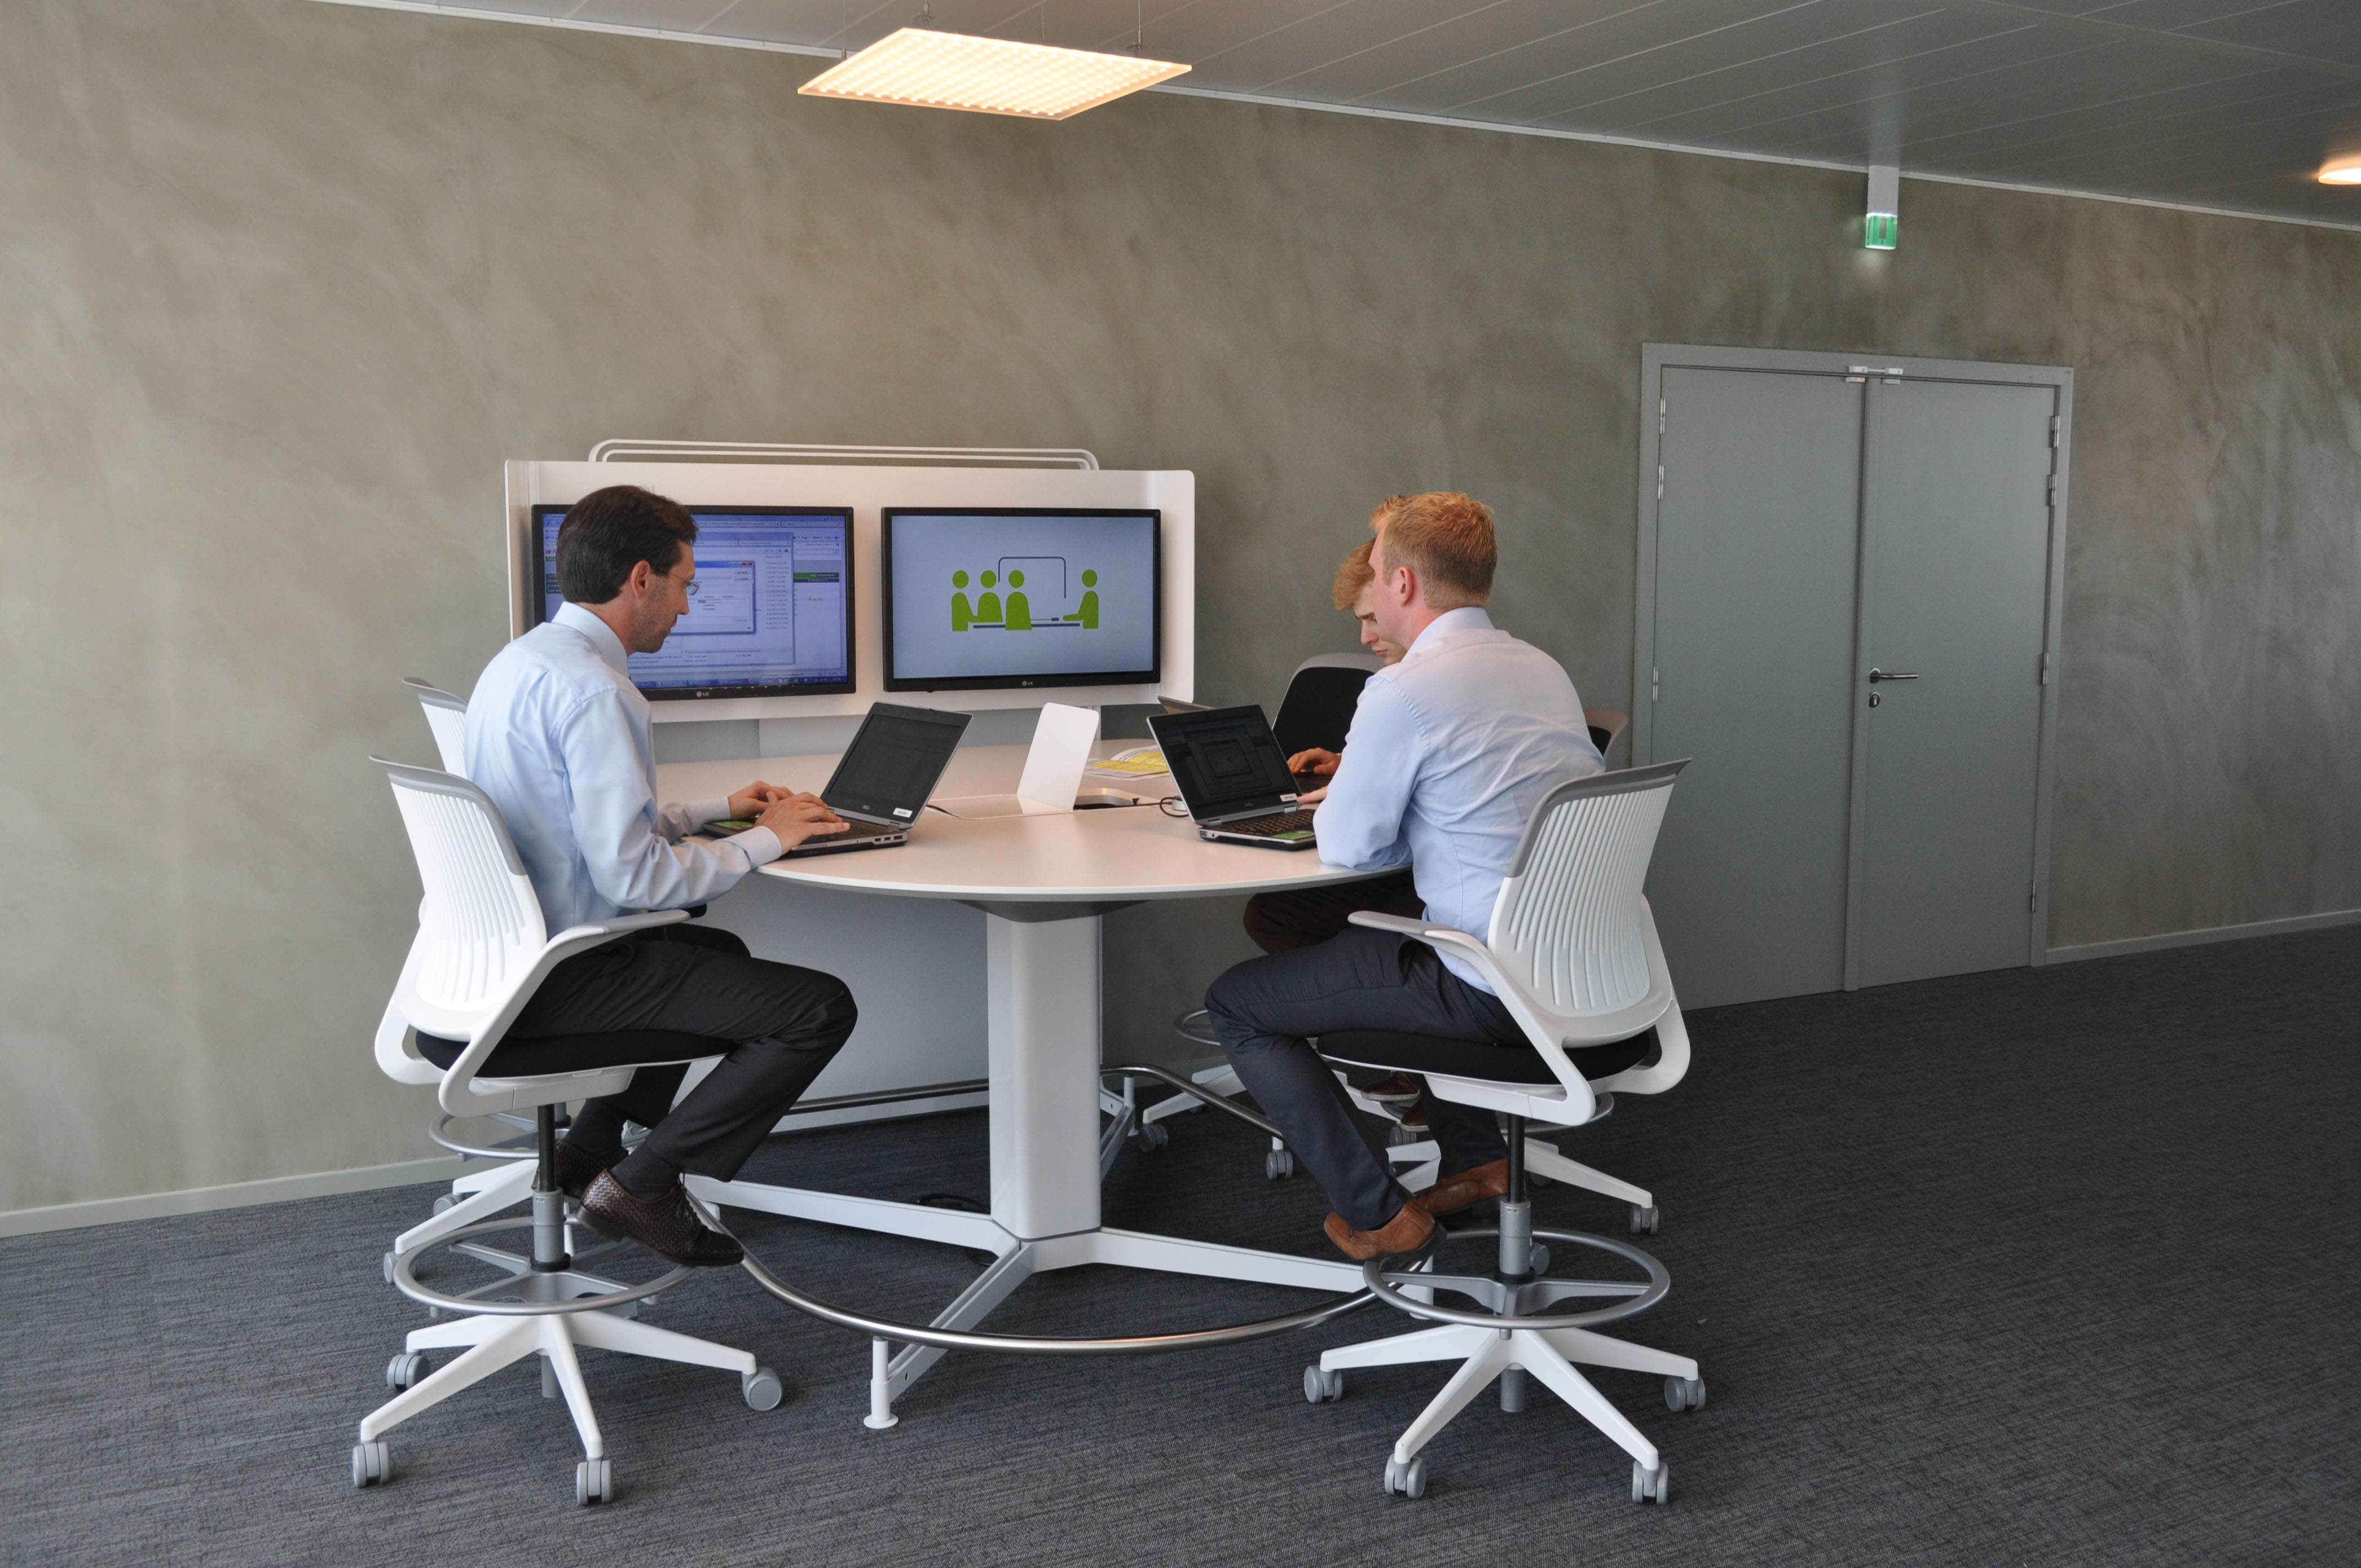 Activity Based Working Designing A Modern Office Avex Be